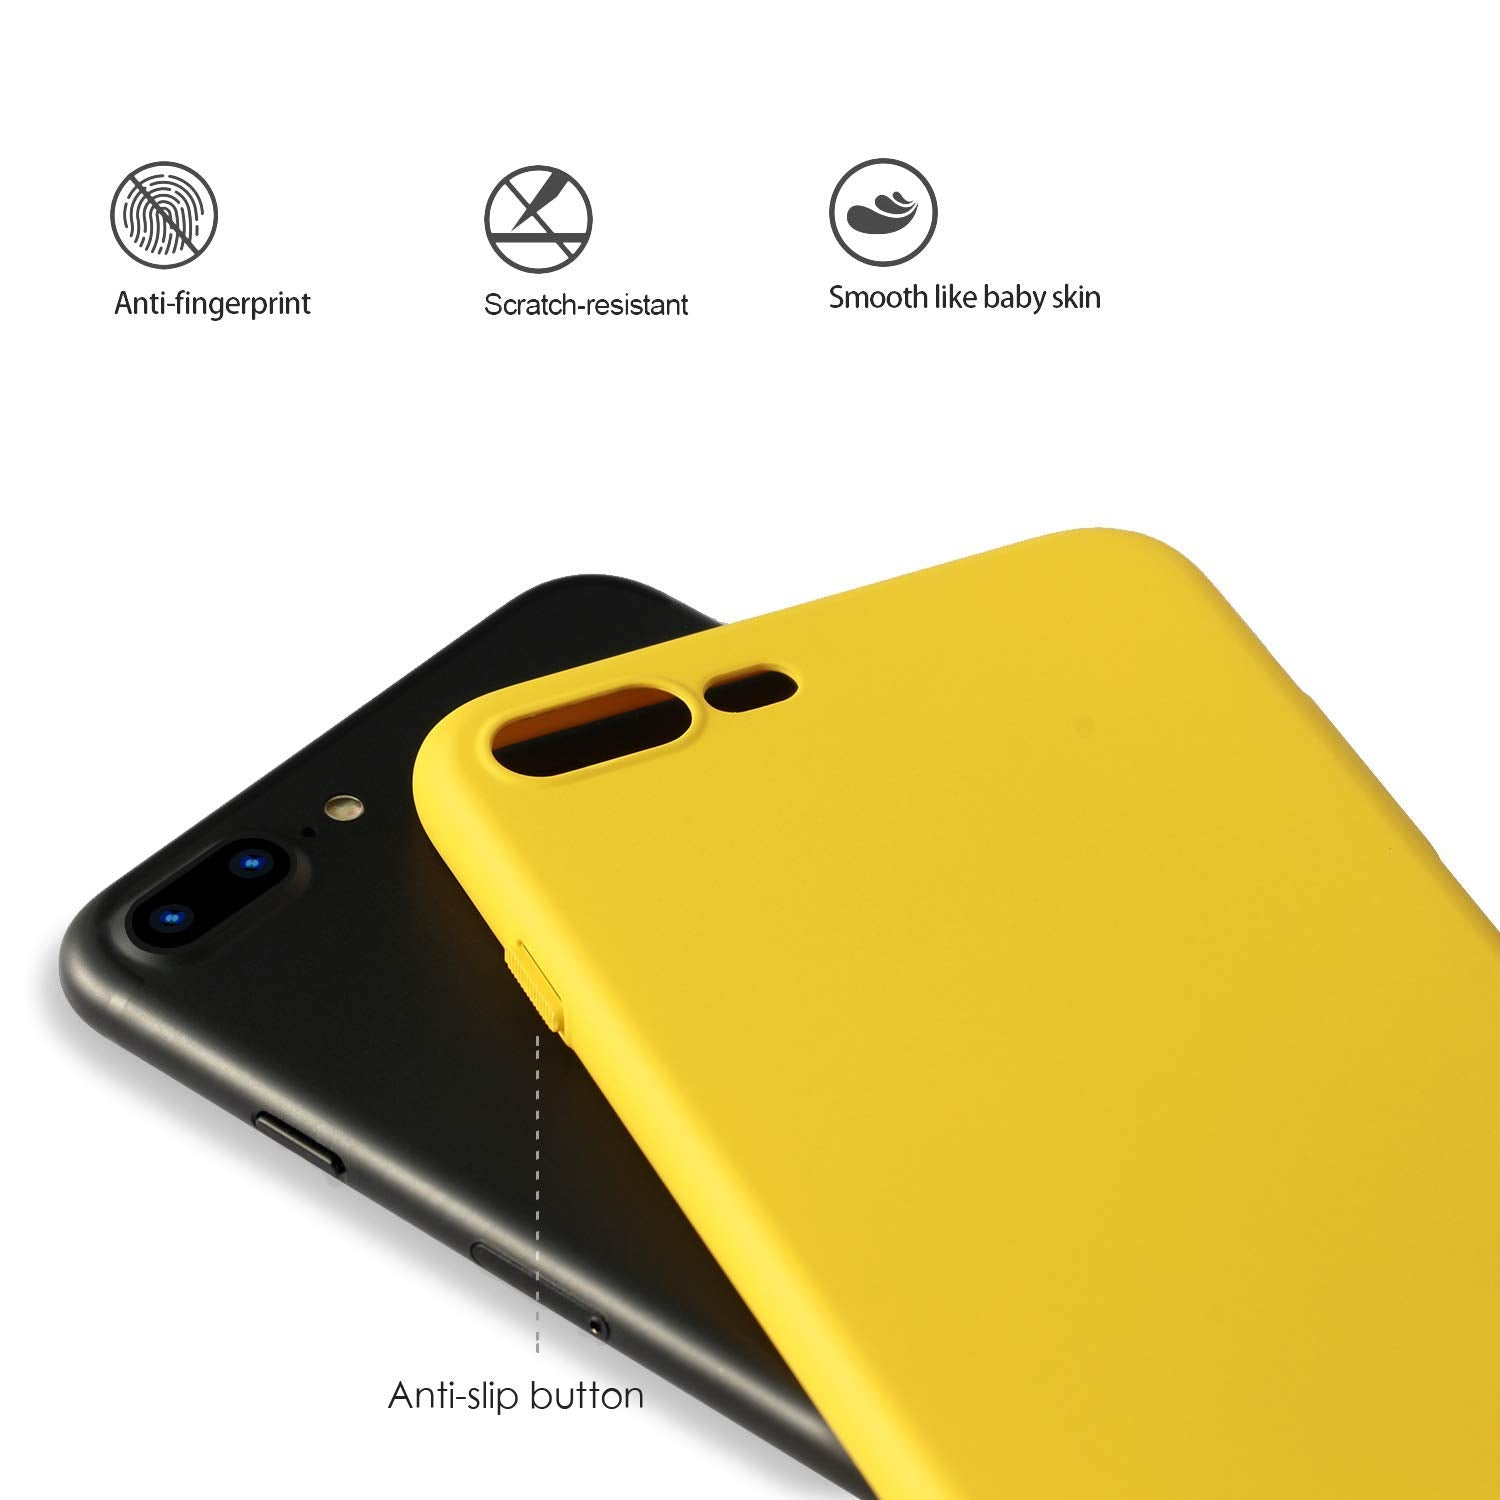 Roopose Ultra Slim Light and Thin Feel Anti-Fingerprints Cell Phone Case Full Protection Hard PC Cover Shell Compatible with iPhone 7/8 Plus